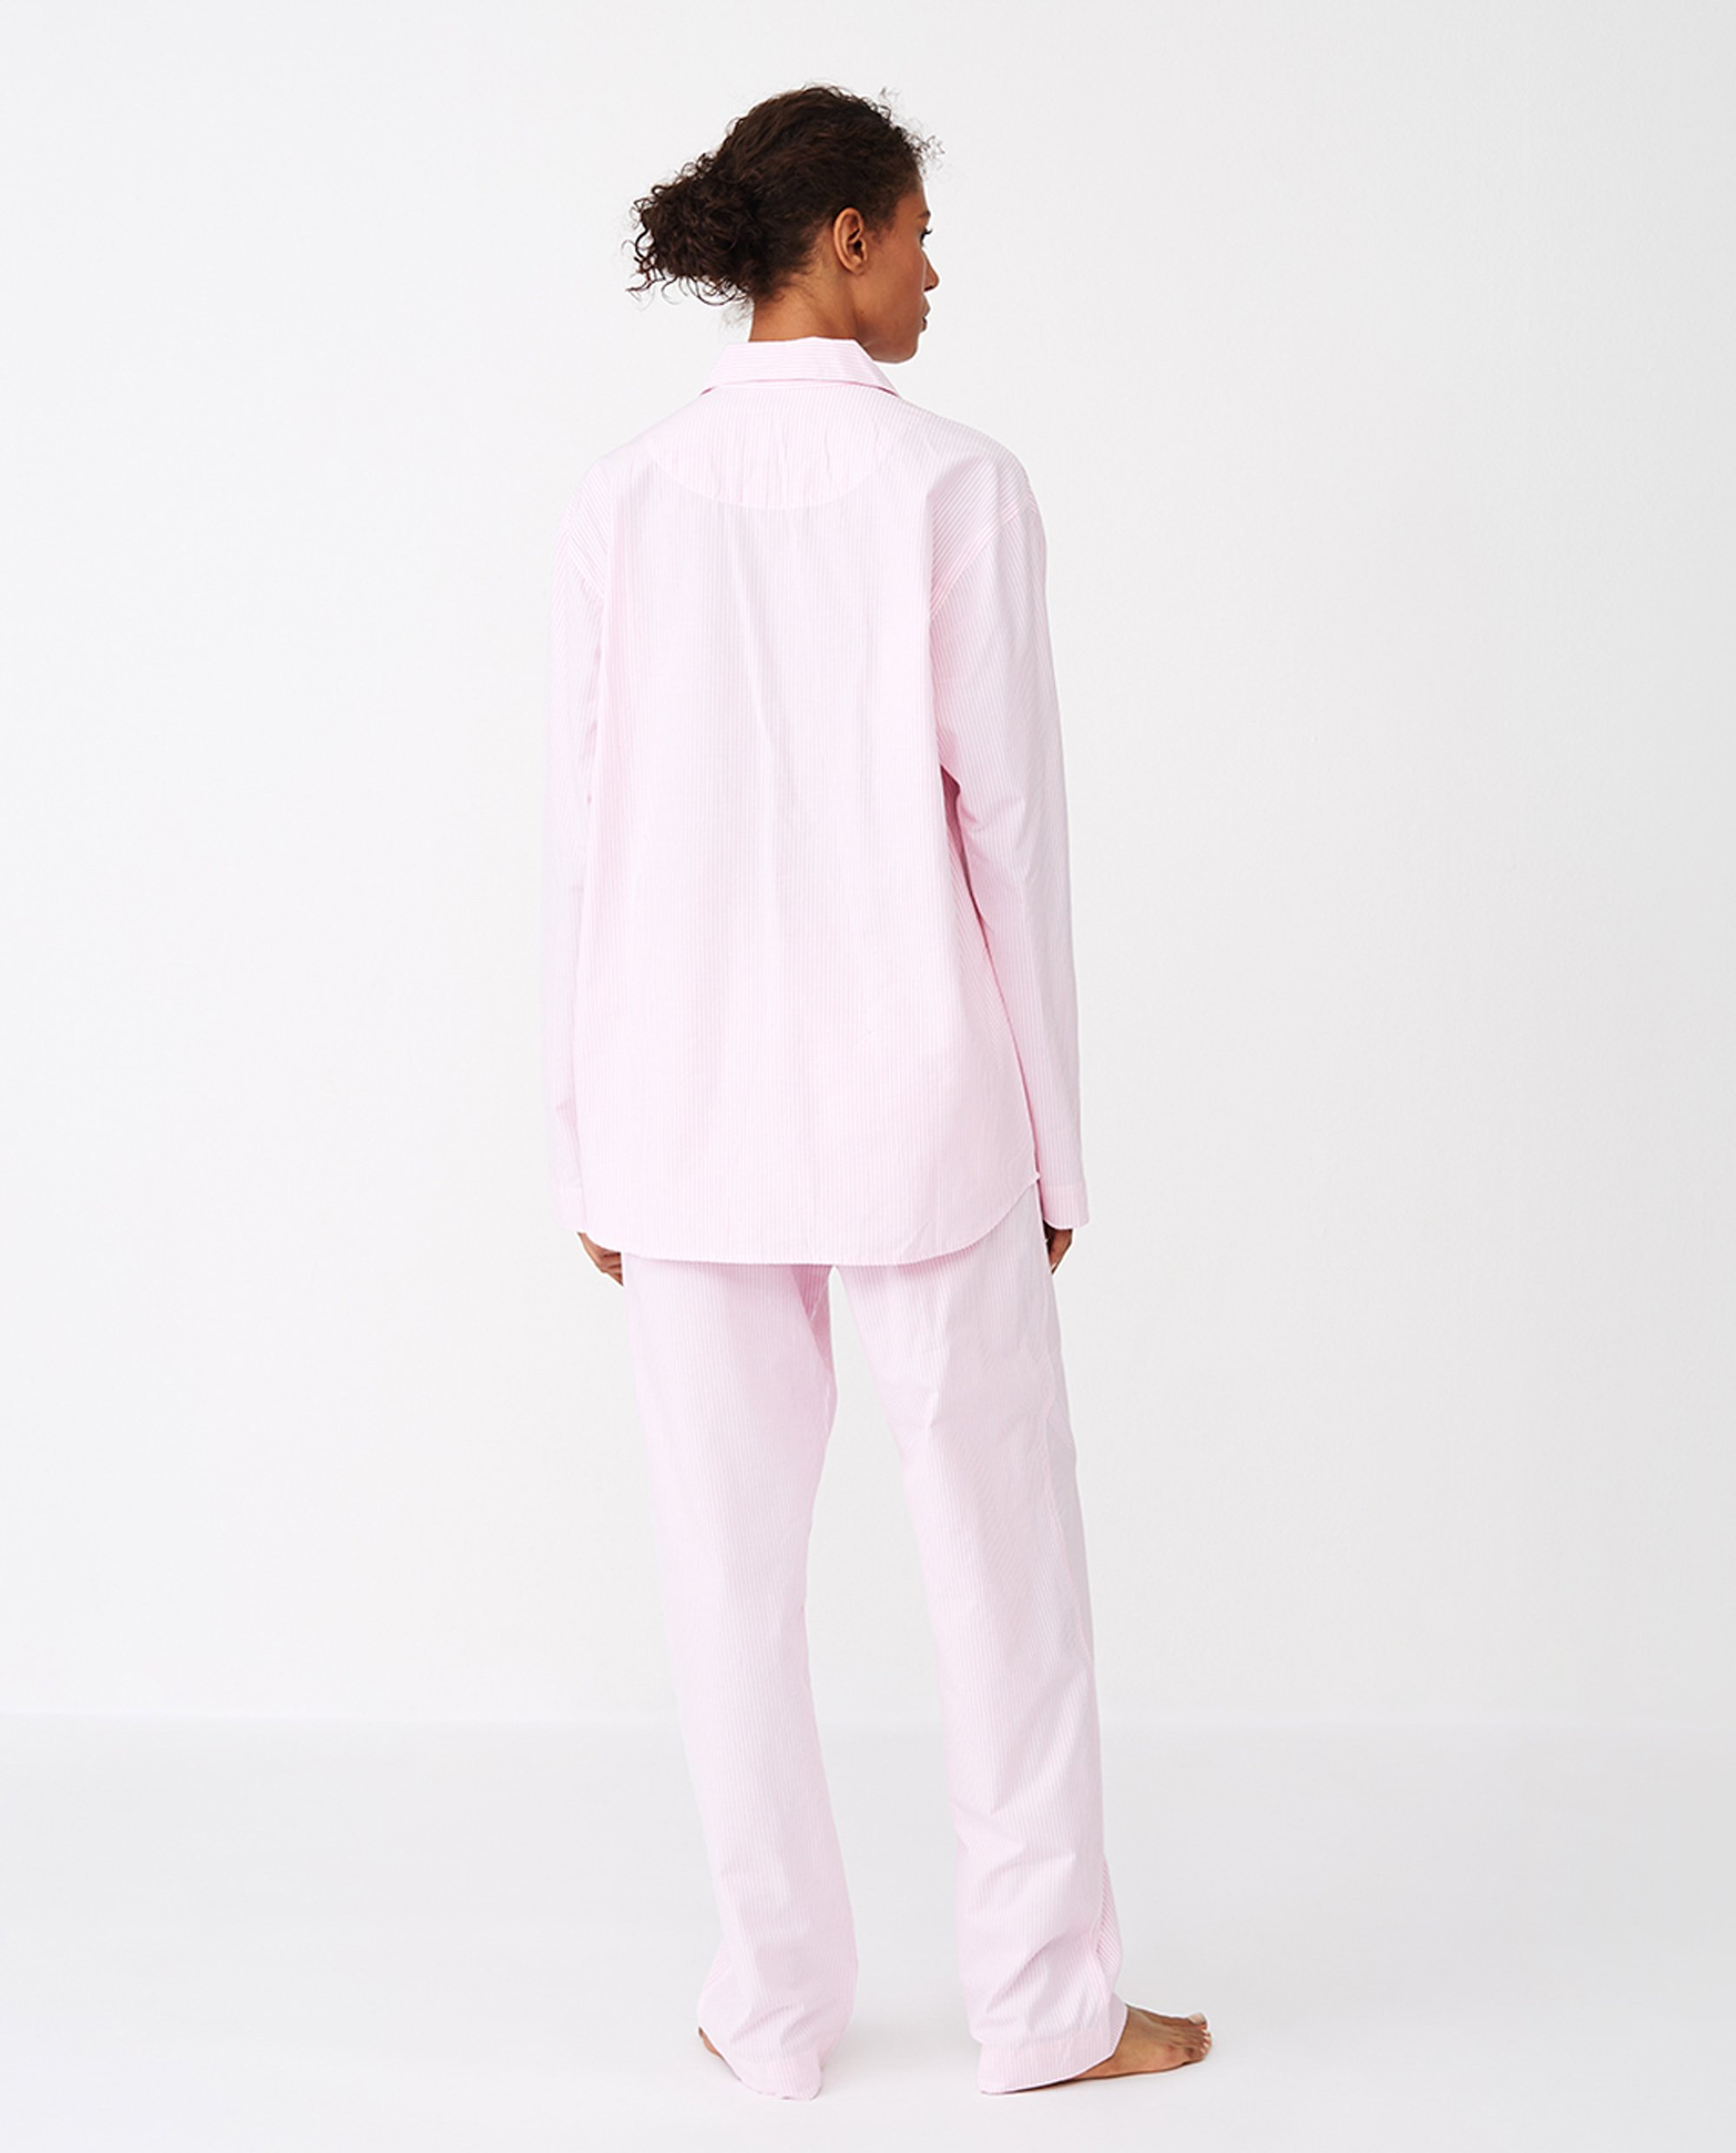 Unisex Organic Cotton Pajama Set, Pink/White